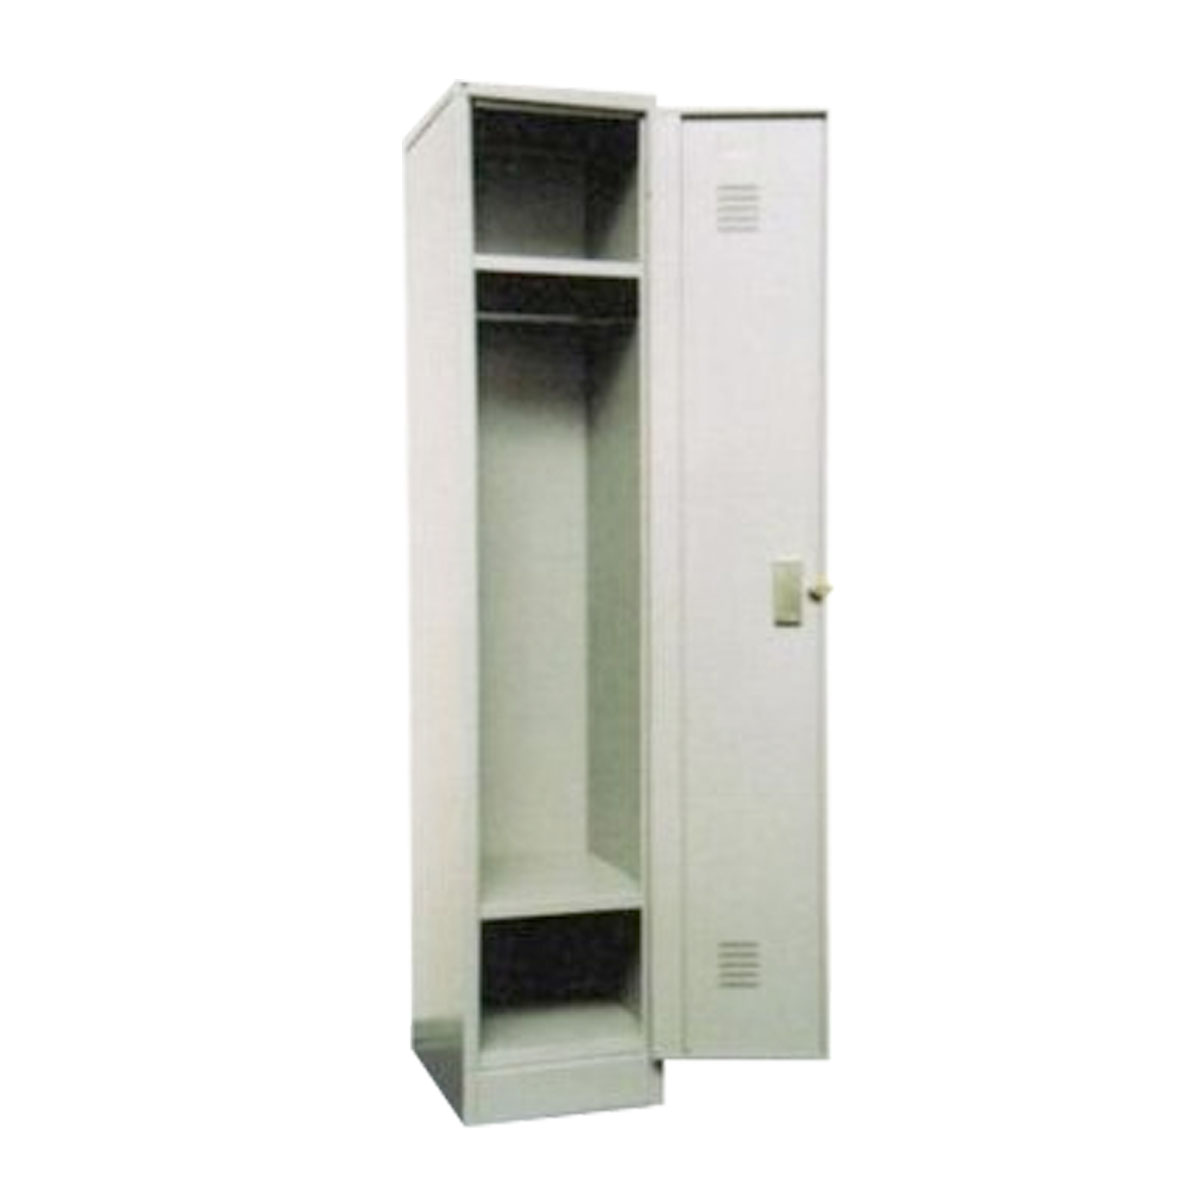 steel-locker-1-compartment.jpg